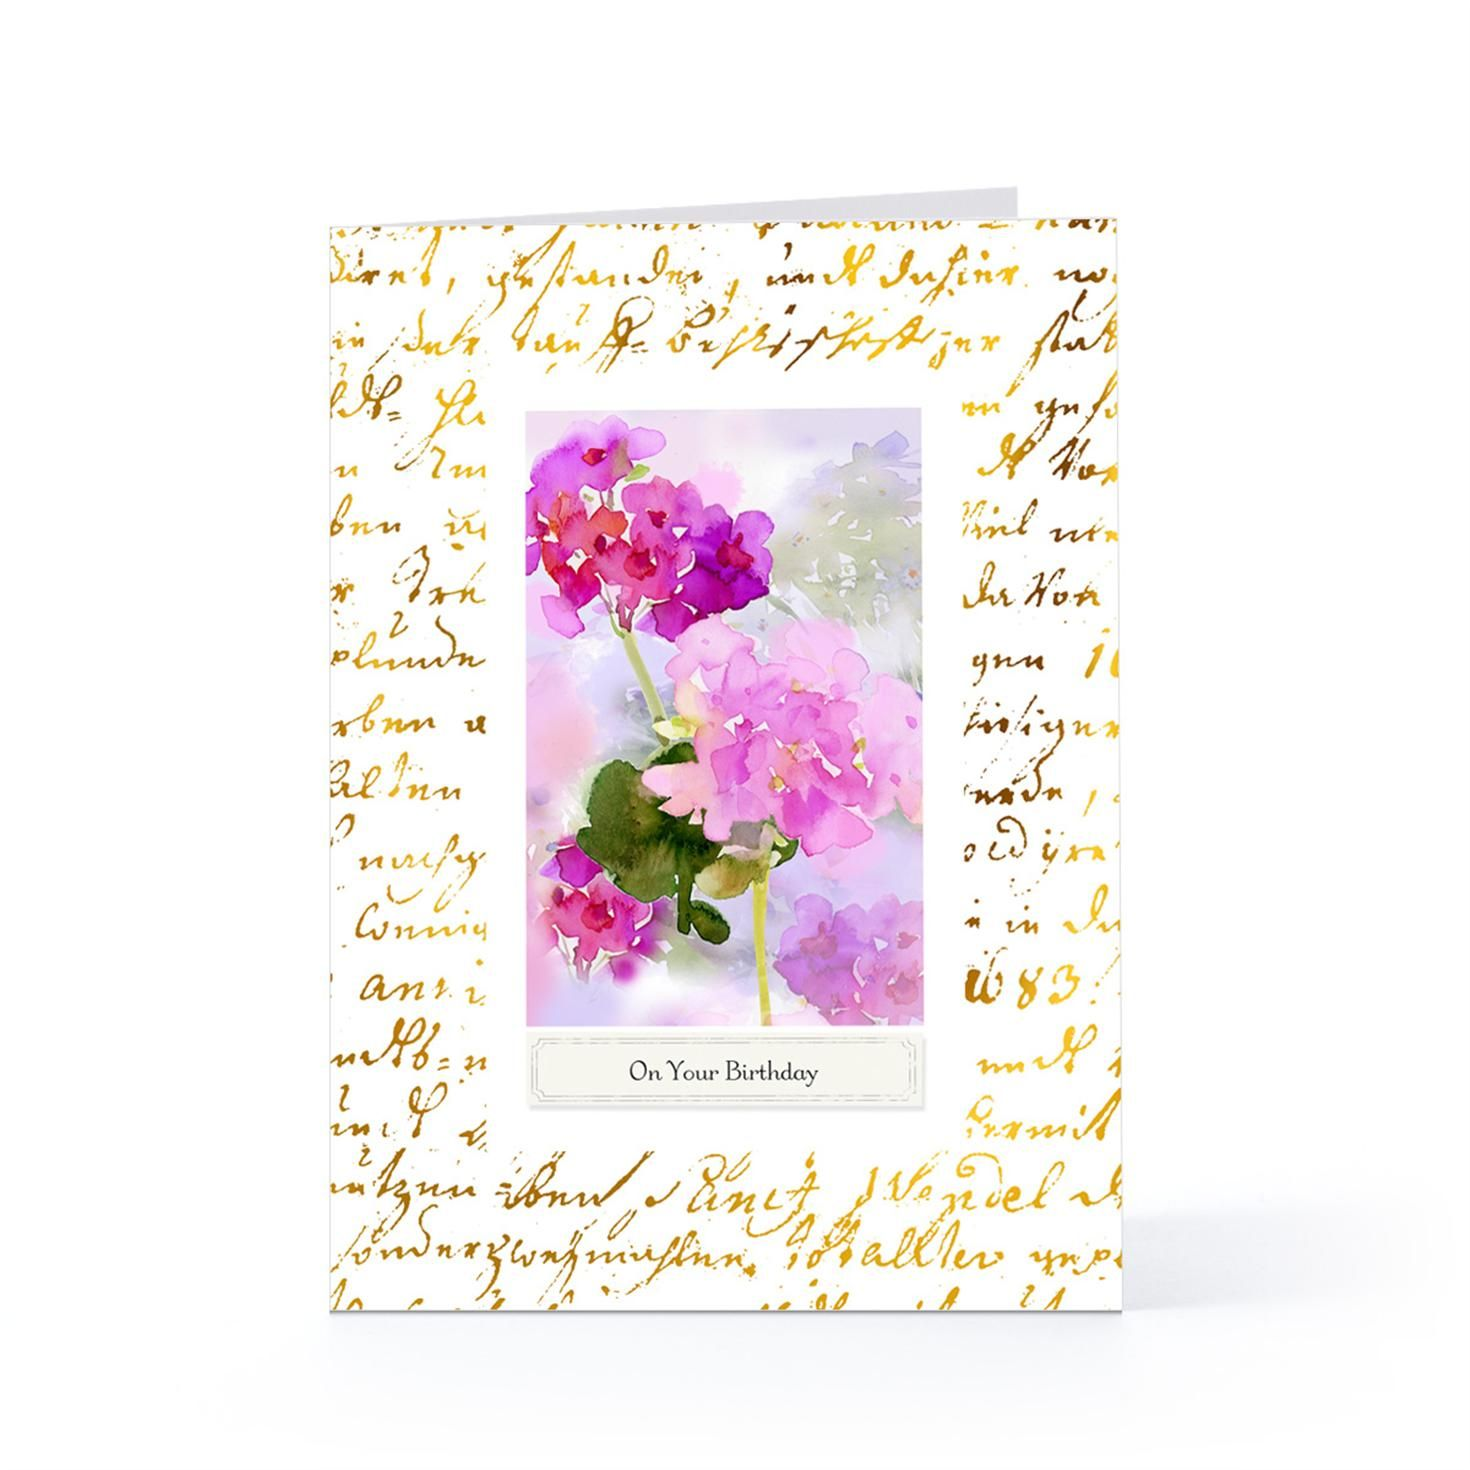 Watercolor floral greeting cards other hallmark sites art watercolor floral greeting cards other hallmark sites m4hsunfo